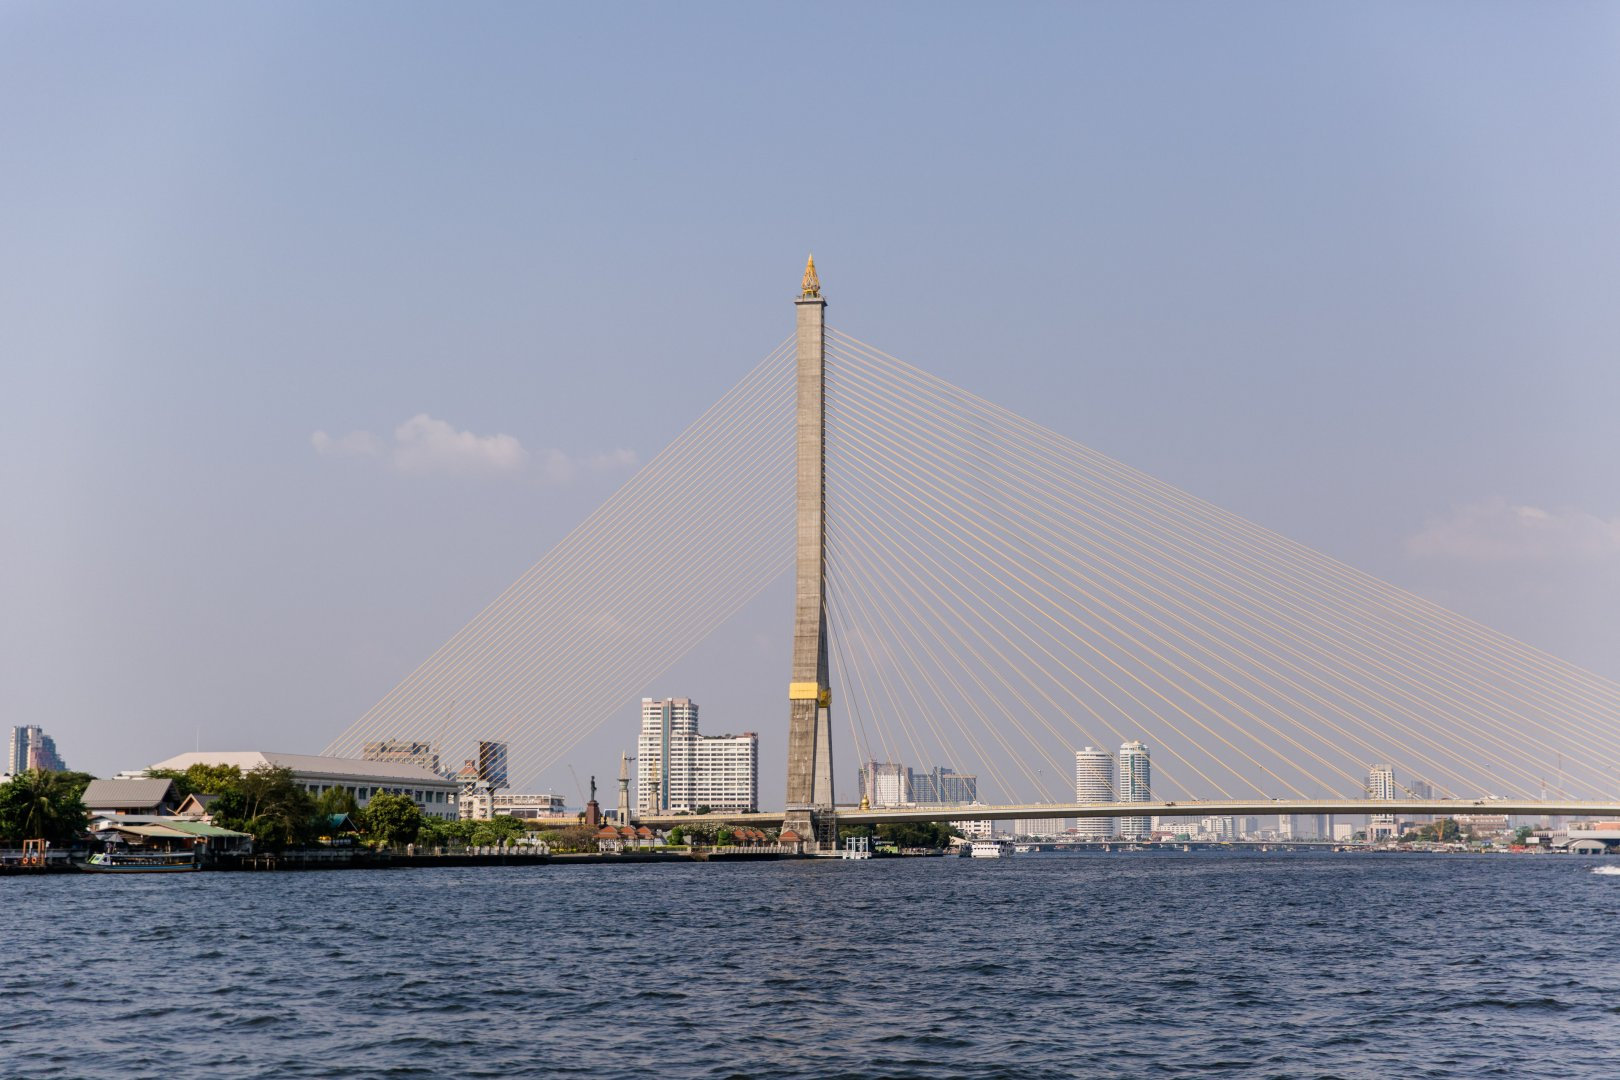 Cable-stayed bridge Landmark Bridge Sky Fixed link Extradosed bridge River Suspension bridge Water Architecture City Sea Monument Tourism Vacation Skyscraper Vehicle Nonbuilding structure Skyway Boat Tourist attraction Brug Tower block Tower Bay Channel